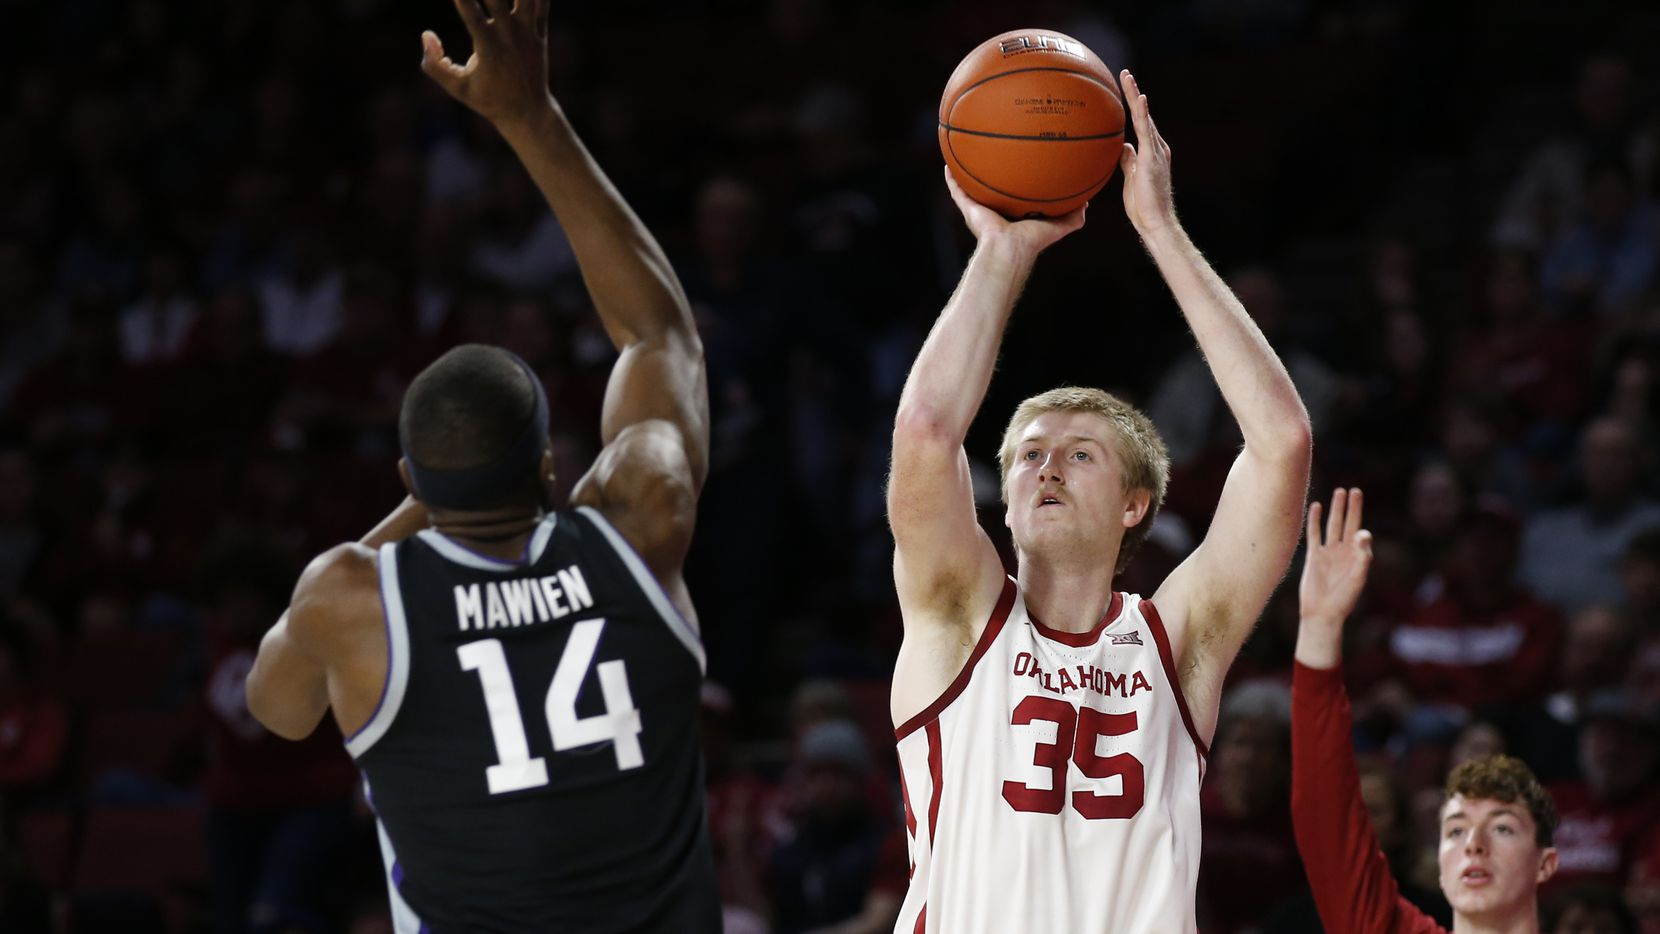 Oklahoma forward Brady Manek (35) shoots in front of Kansas State forward Makol Mawien (14) in the second half of an NCAA college basketball game in Norman, Okla., Saturday, Jan. 4, 2020.